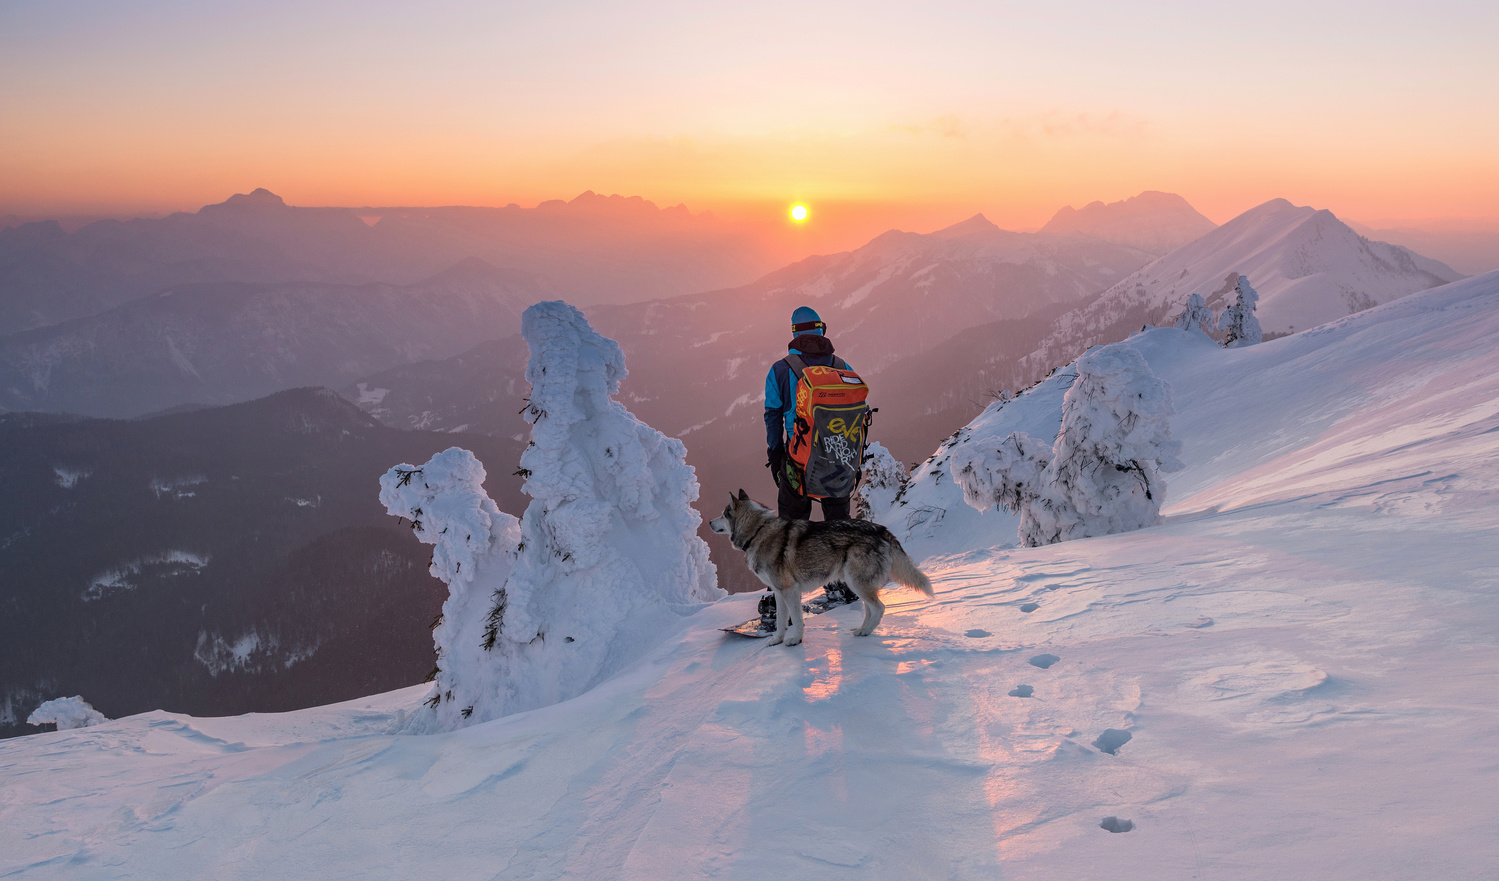 Snowboarder and his dog by Ales Krivec